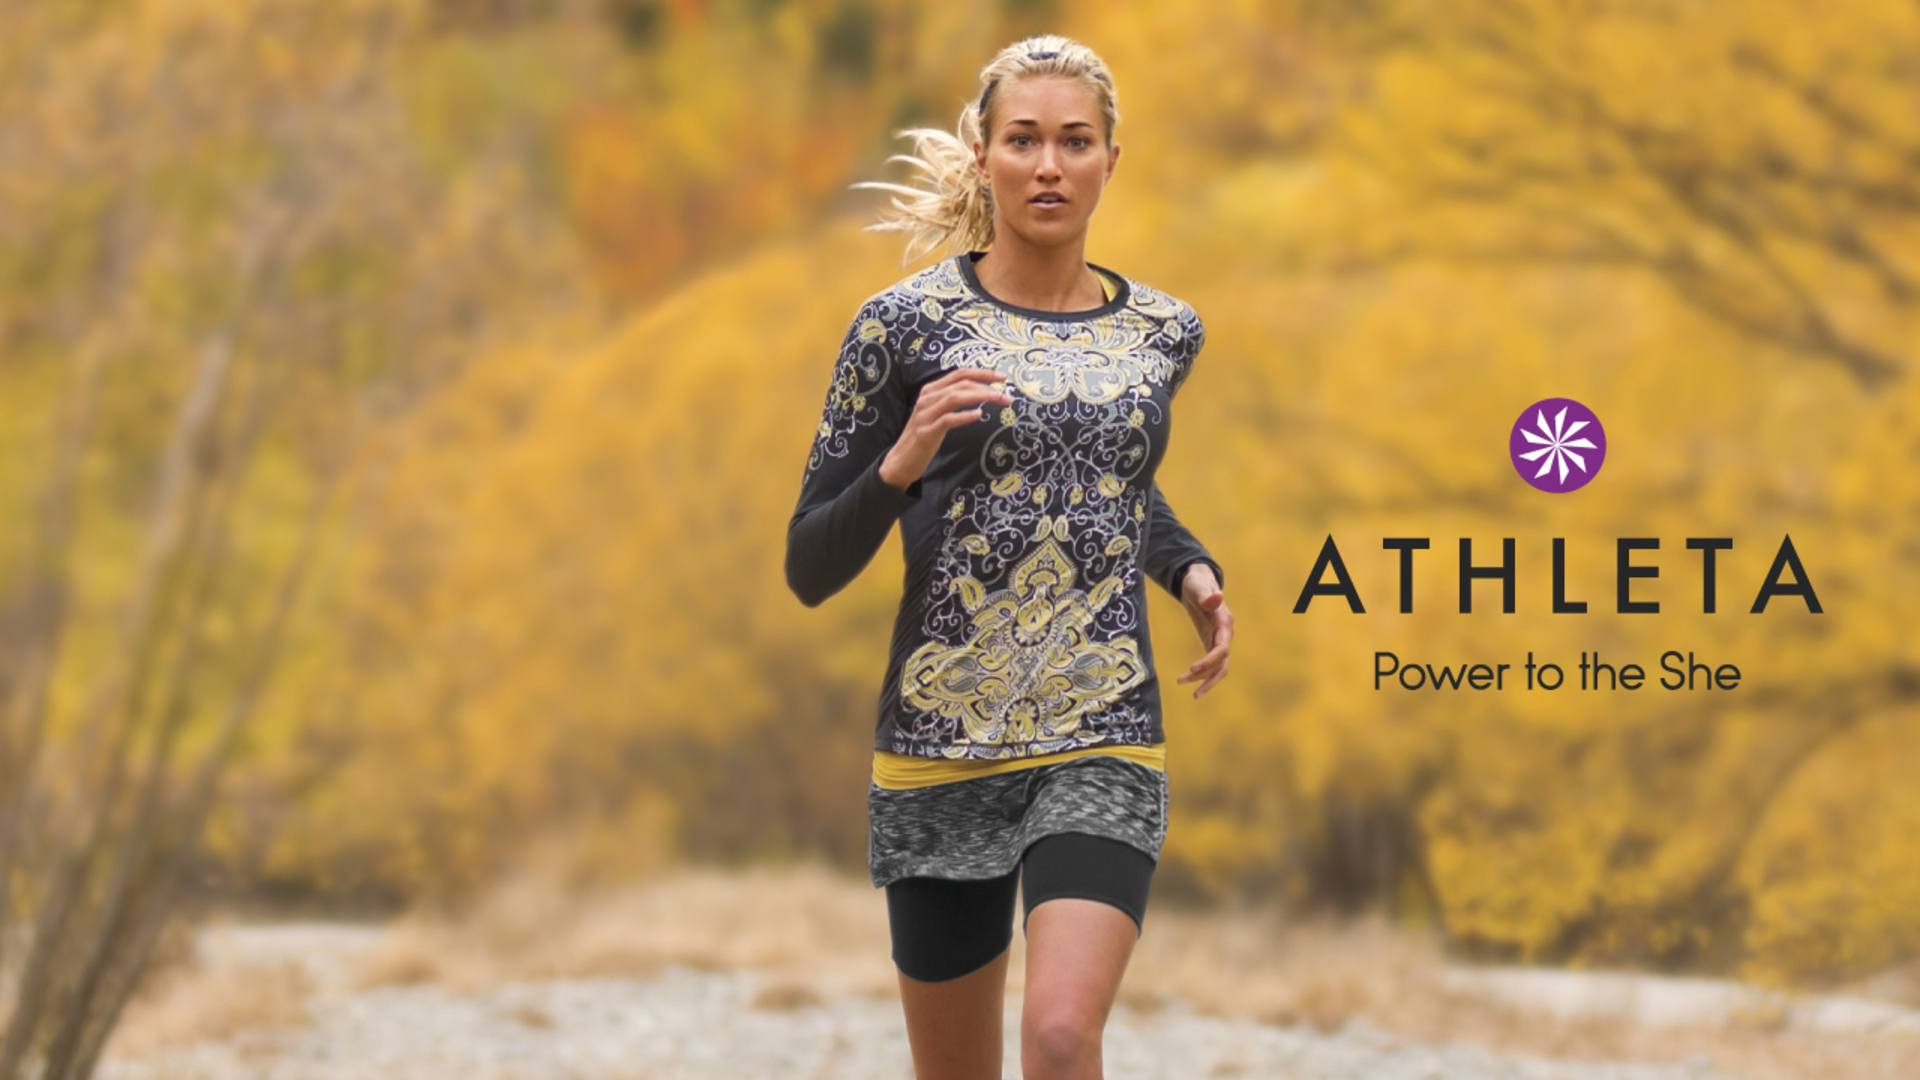 What Athleta means to you Your history/personal experience with Athleta Submit the link to your max minute YouTube video in the box below, please set the video without an expiration date.